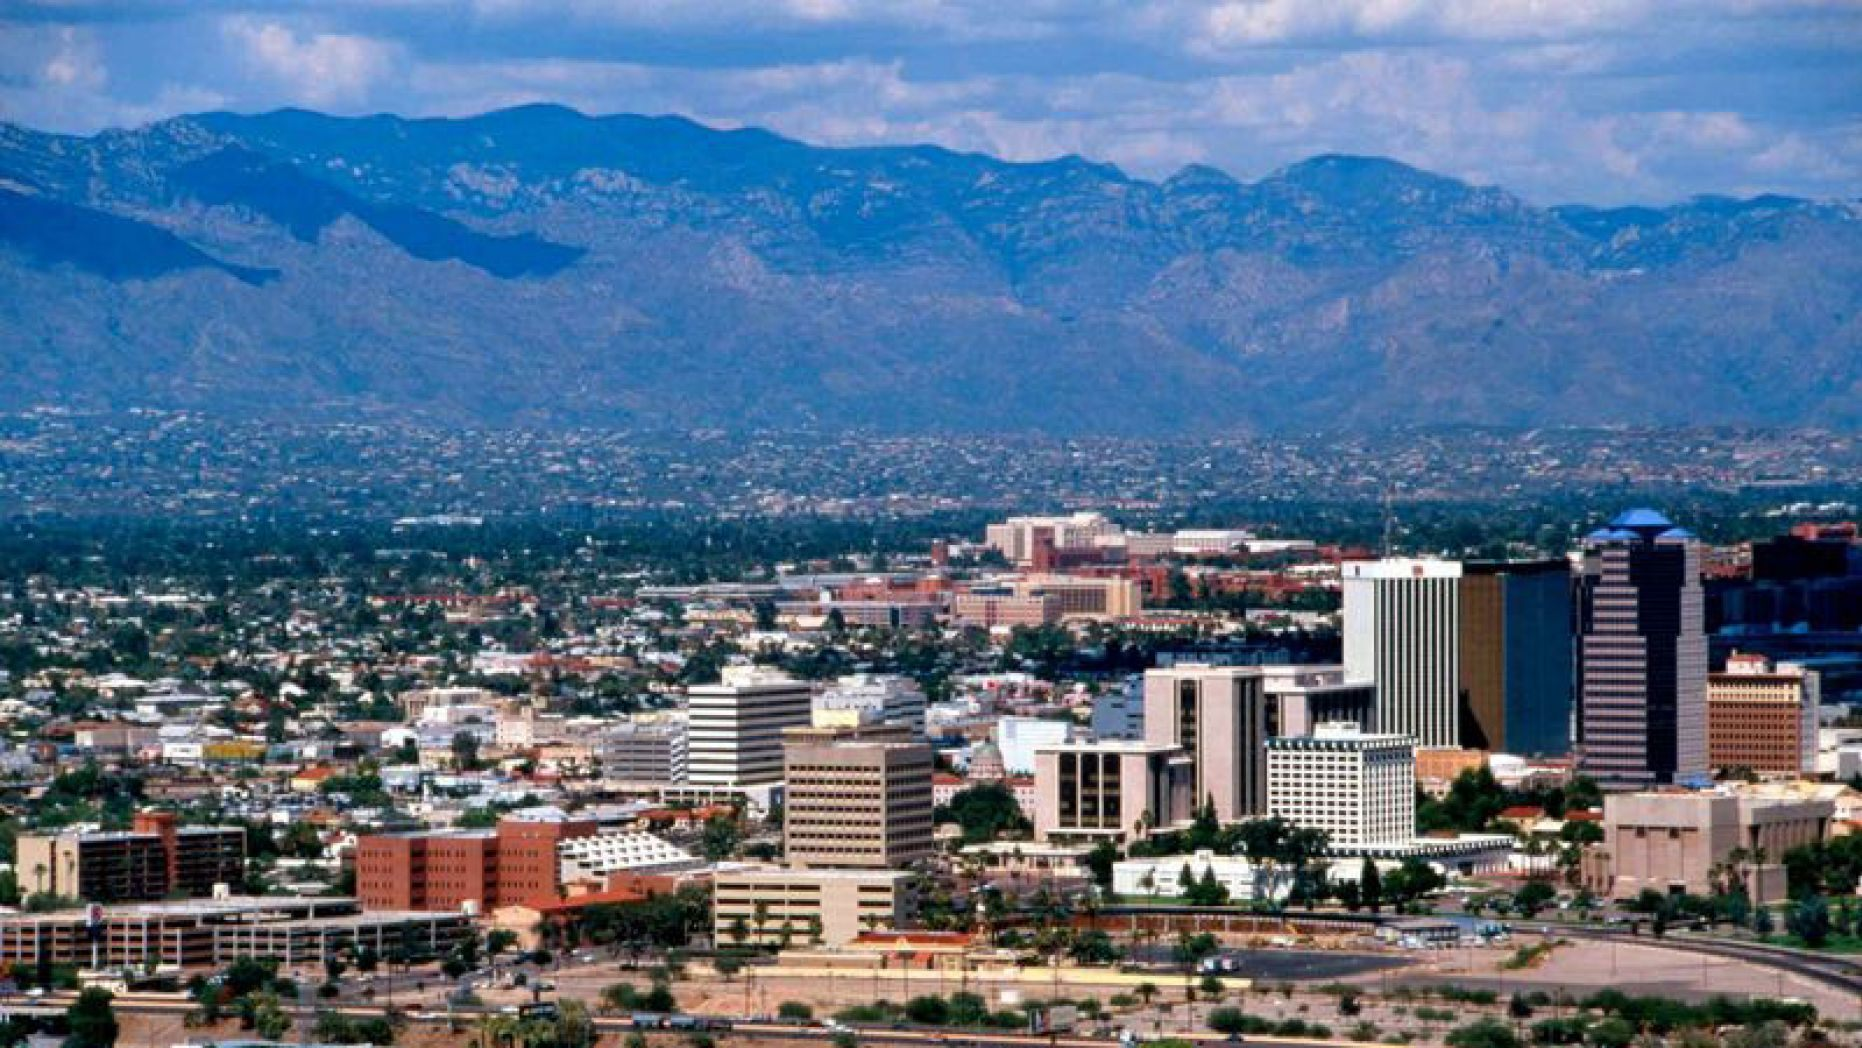 Tucson voters overwhelmingly reject sanctuary city measure